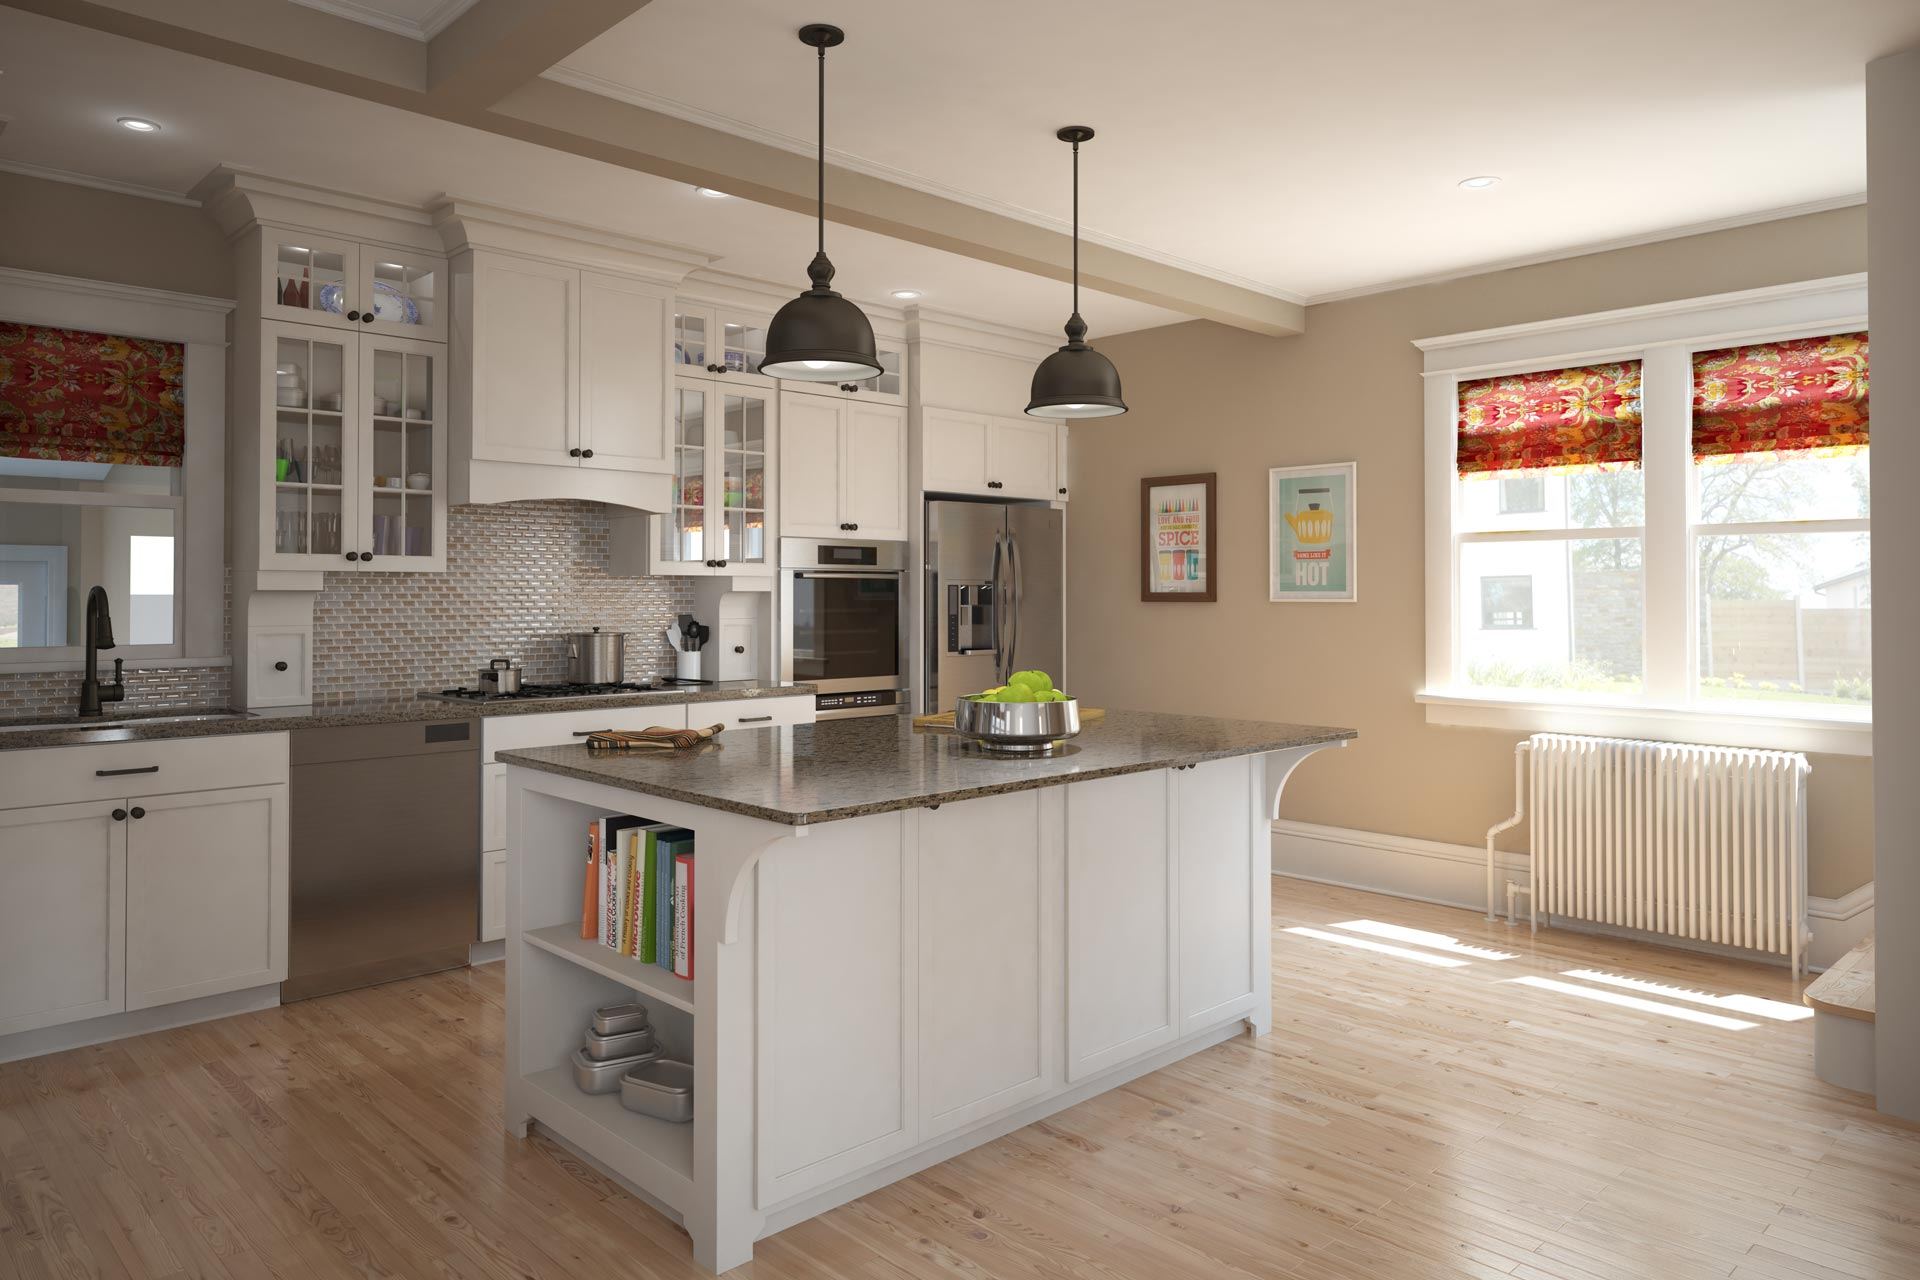 Architectural renders of a brightly lit white kitchen with dark gray counters and an island